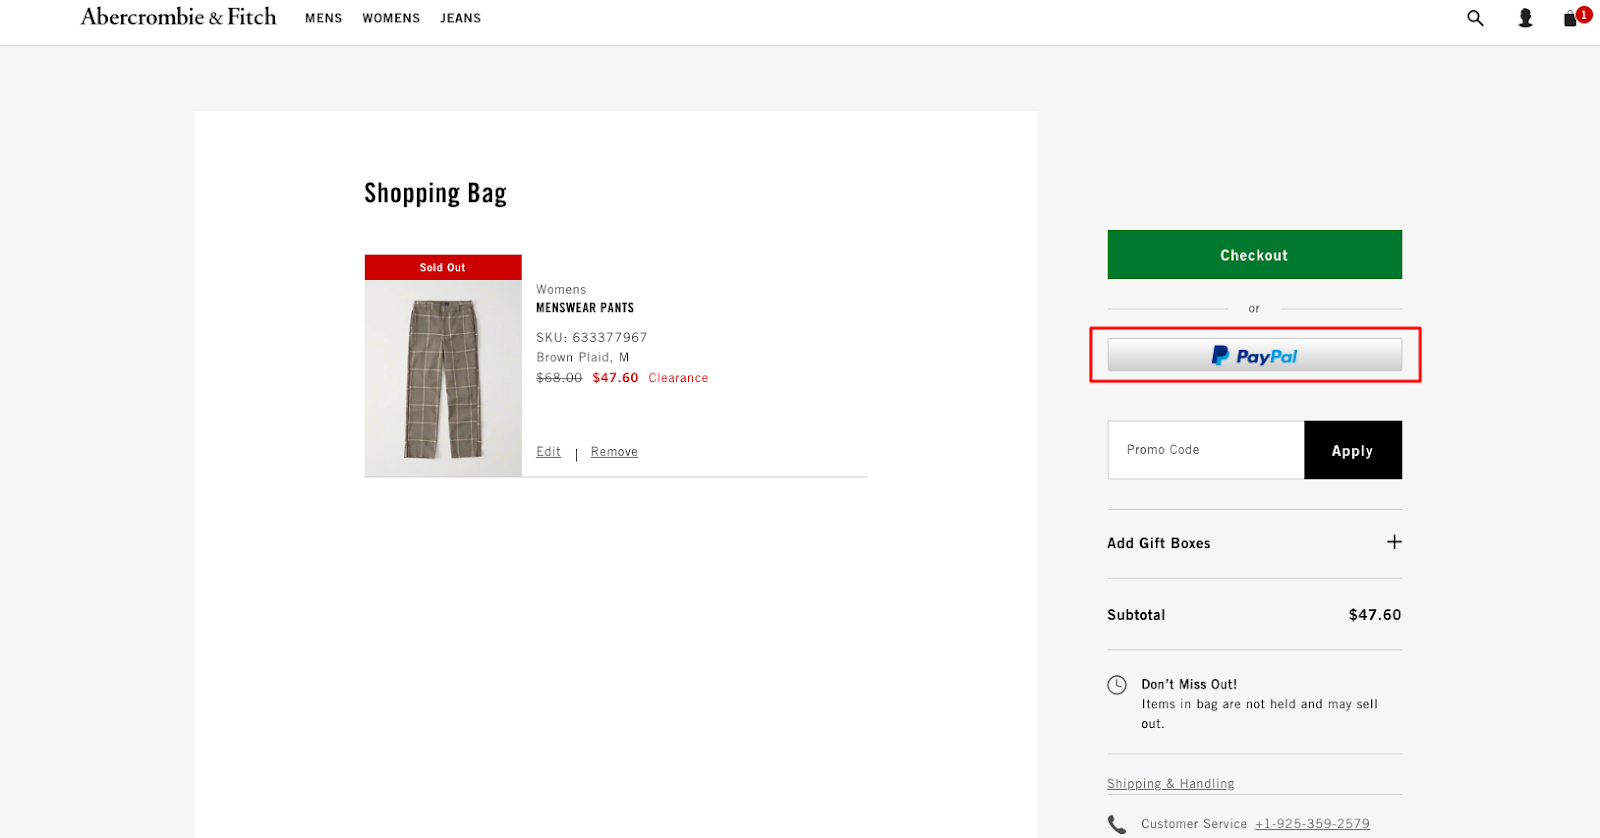 Abercrombie & Fitch Checkout: Check Payment Through PayPal